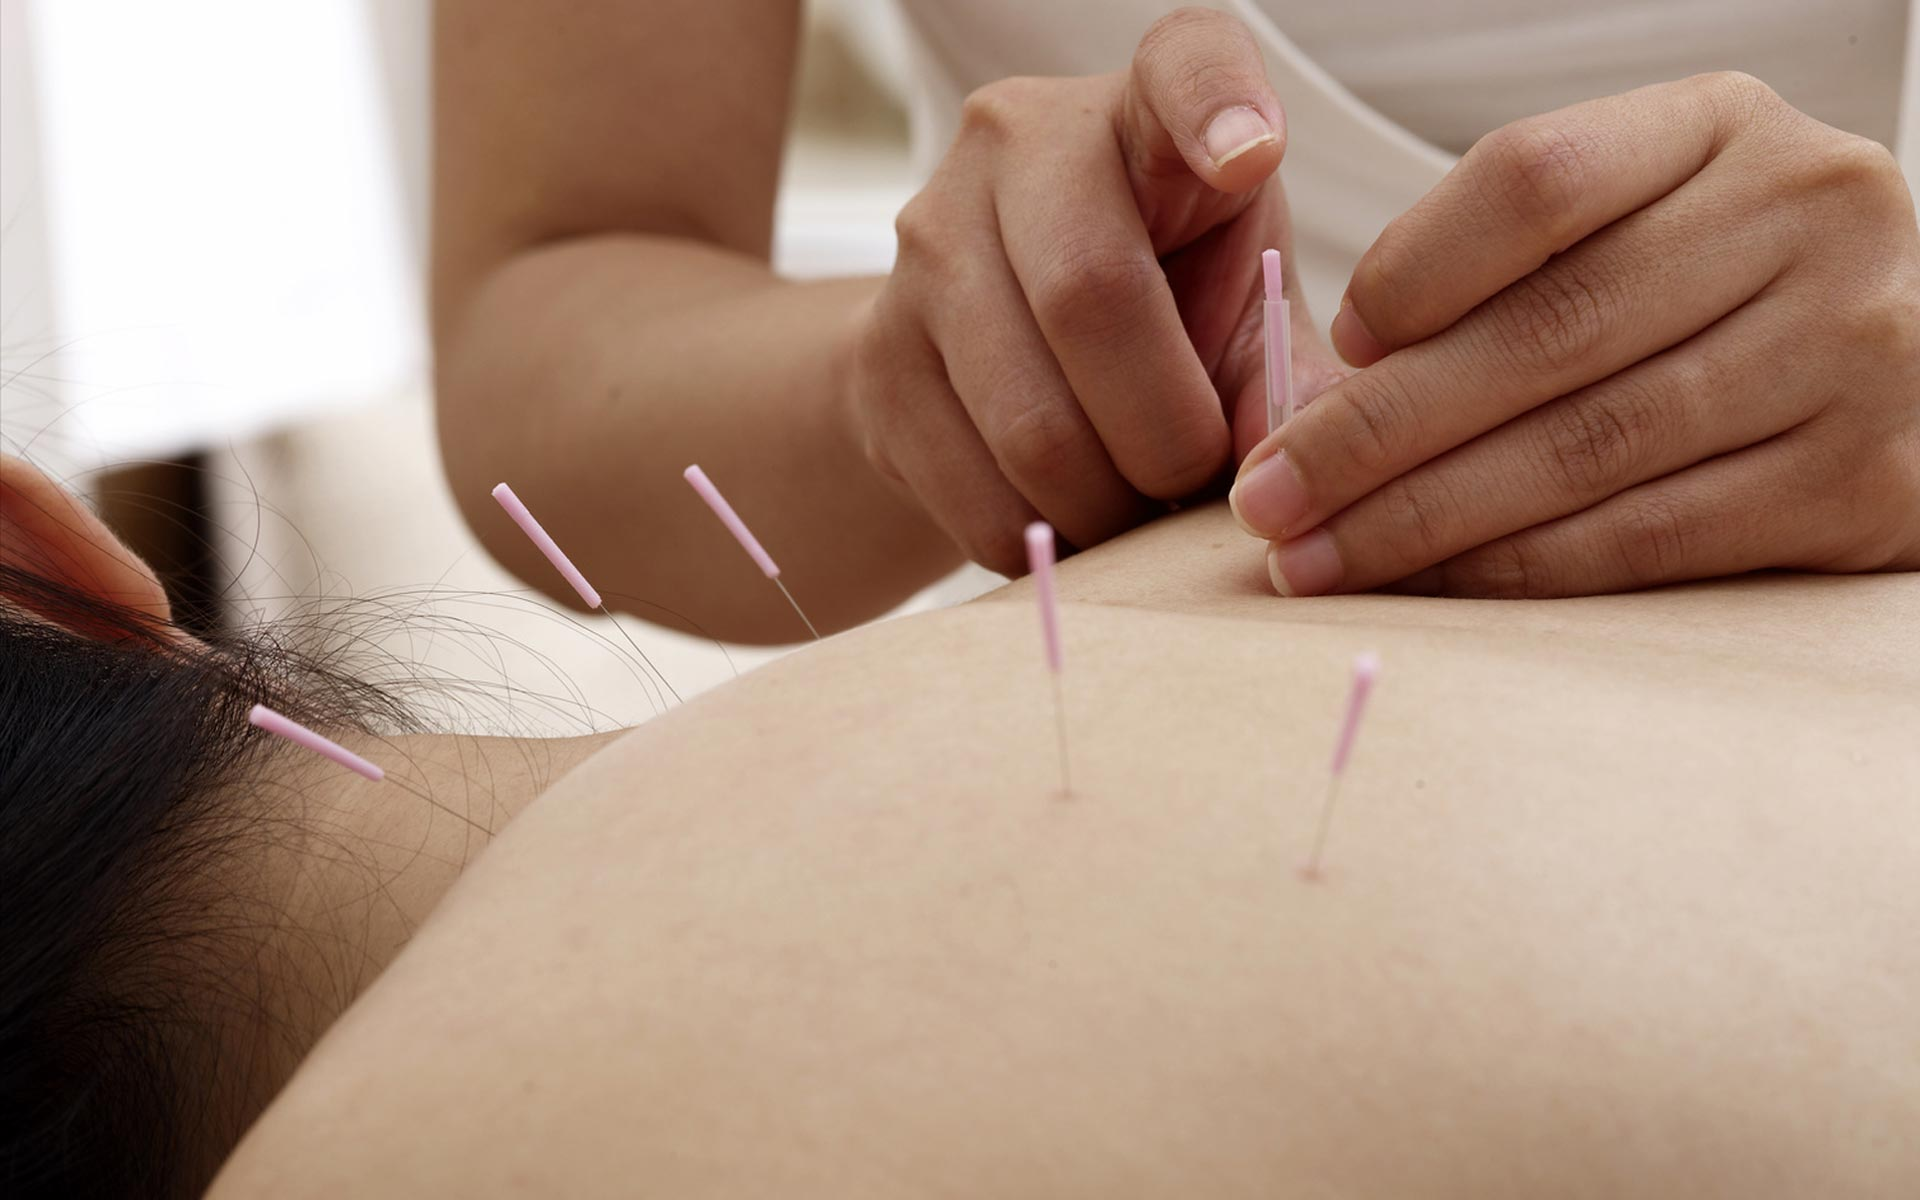 L'acupuncture : un art médical ancestral